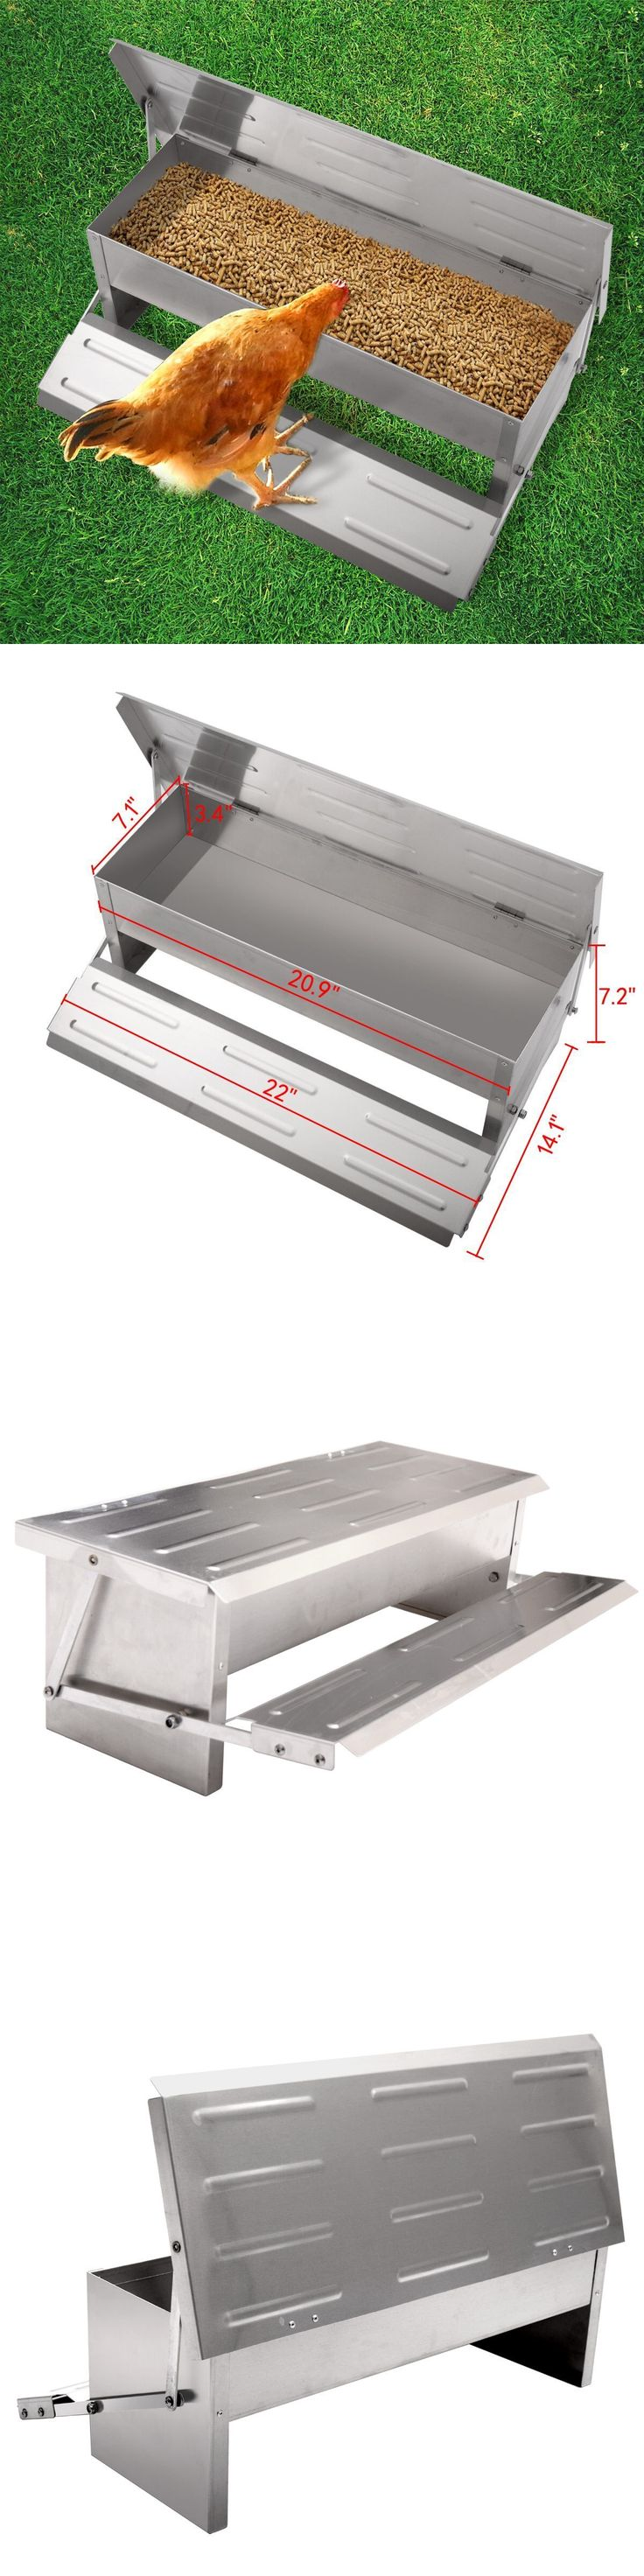 Backyard Poultry Supplies 177801: Chicken Feeder Automatic Aluminium Feed Chook Poultry Auto Treadle Self Opening -> BUY IT NOW ONLY: $32.99 on eBay!